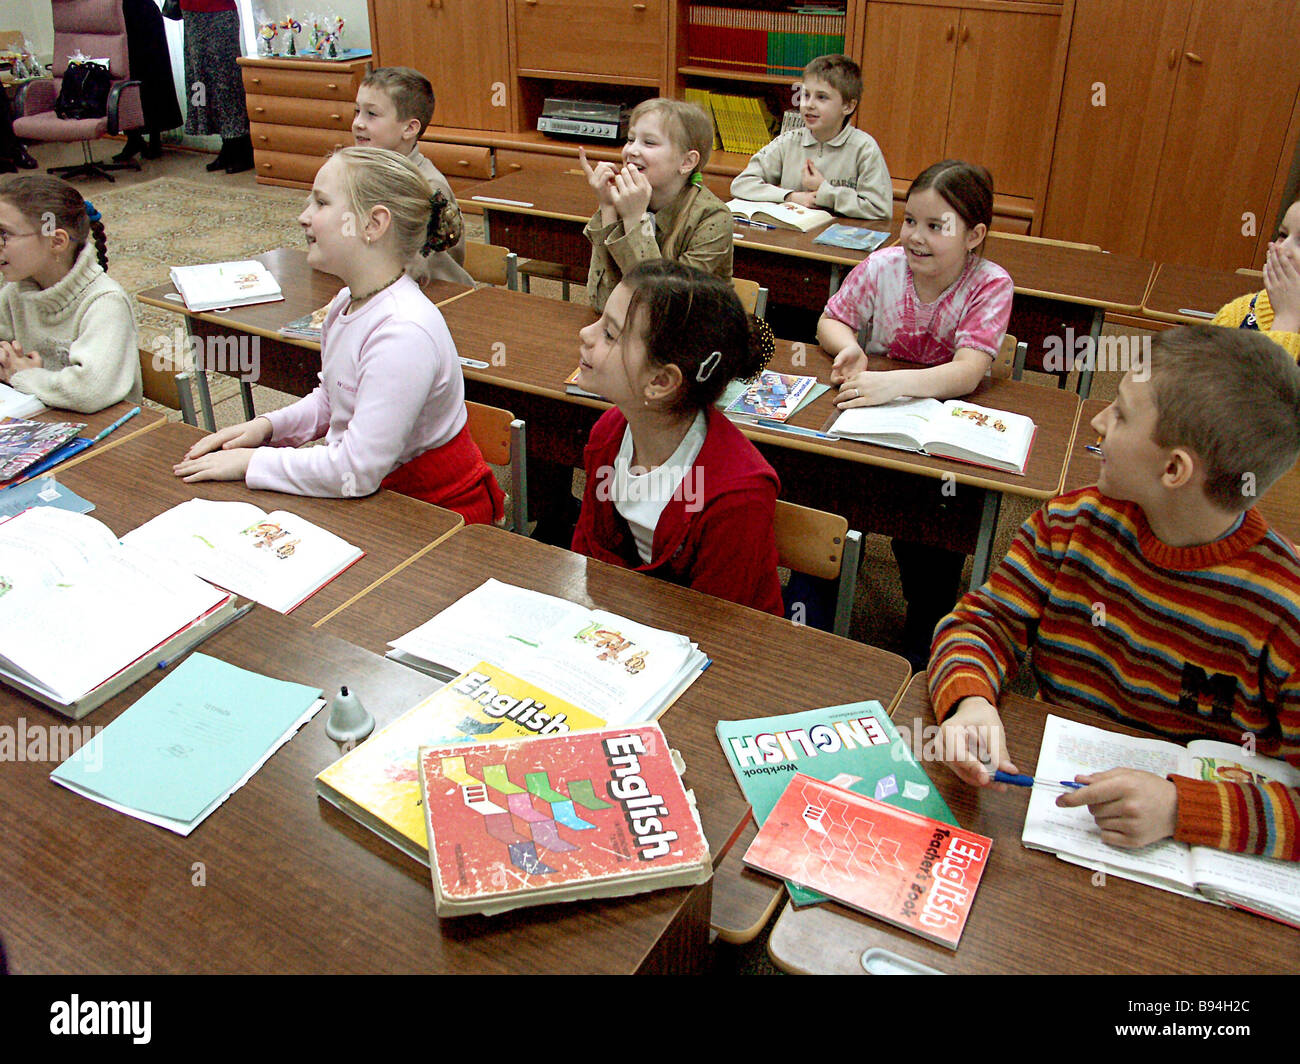 Children at Moscow Secondary School 1253 which specializes in foreign languages during an English class - Stock Image